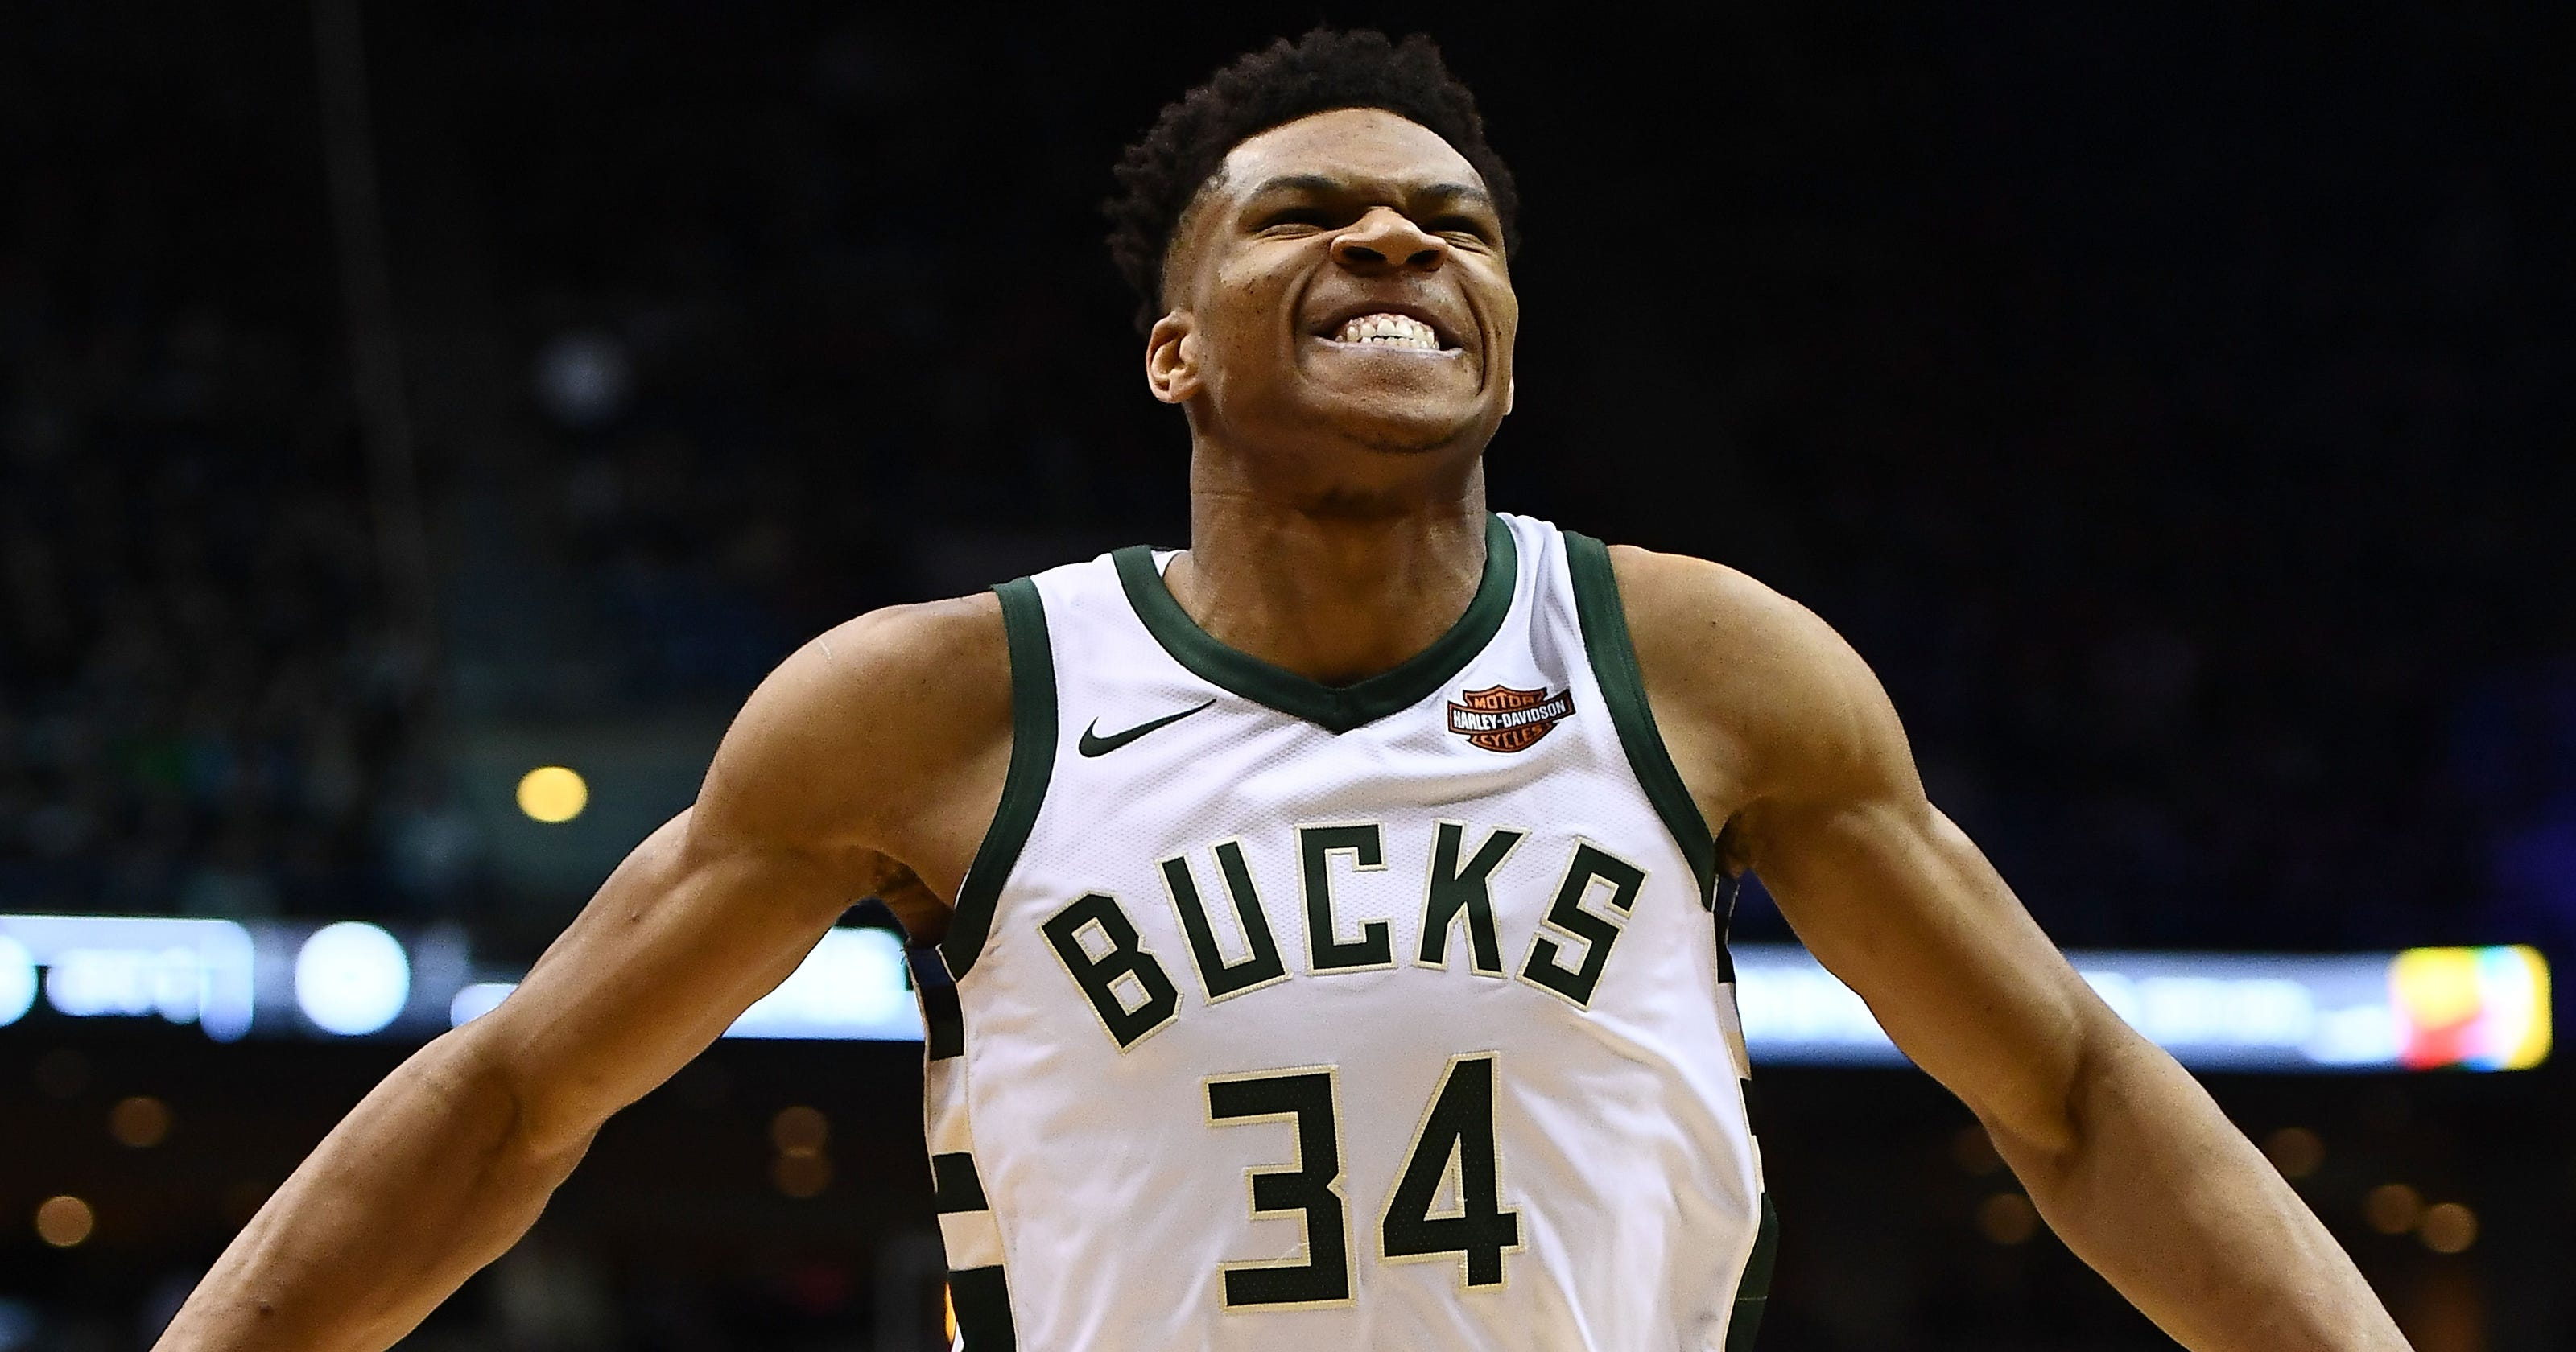 de027e12d22 Giannis crowd-sourced suggestions for his forthcoming signature shoe